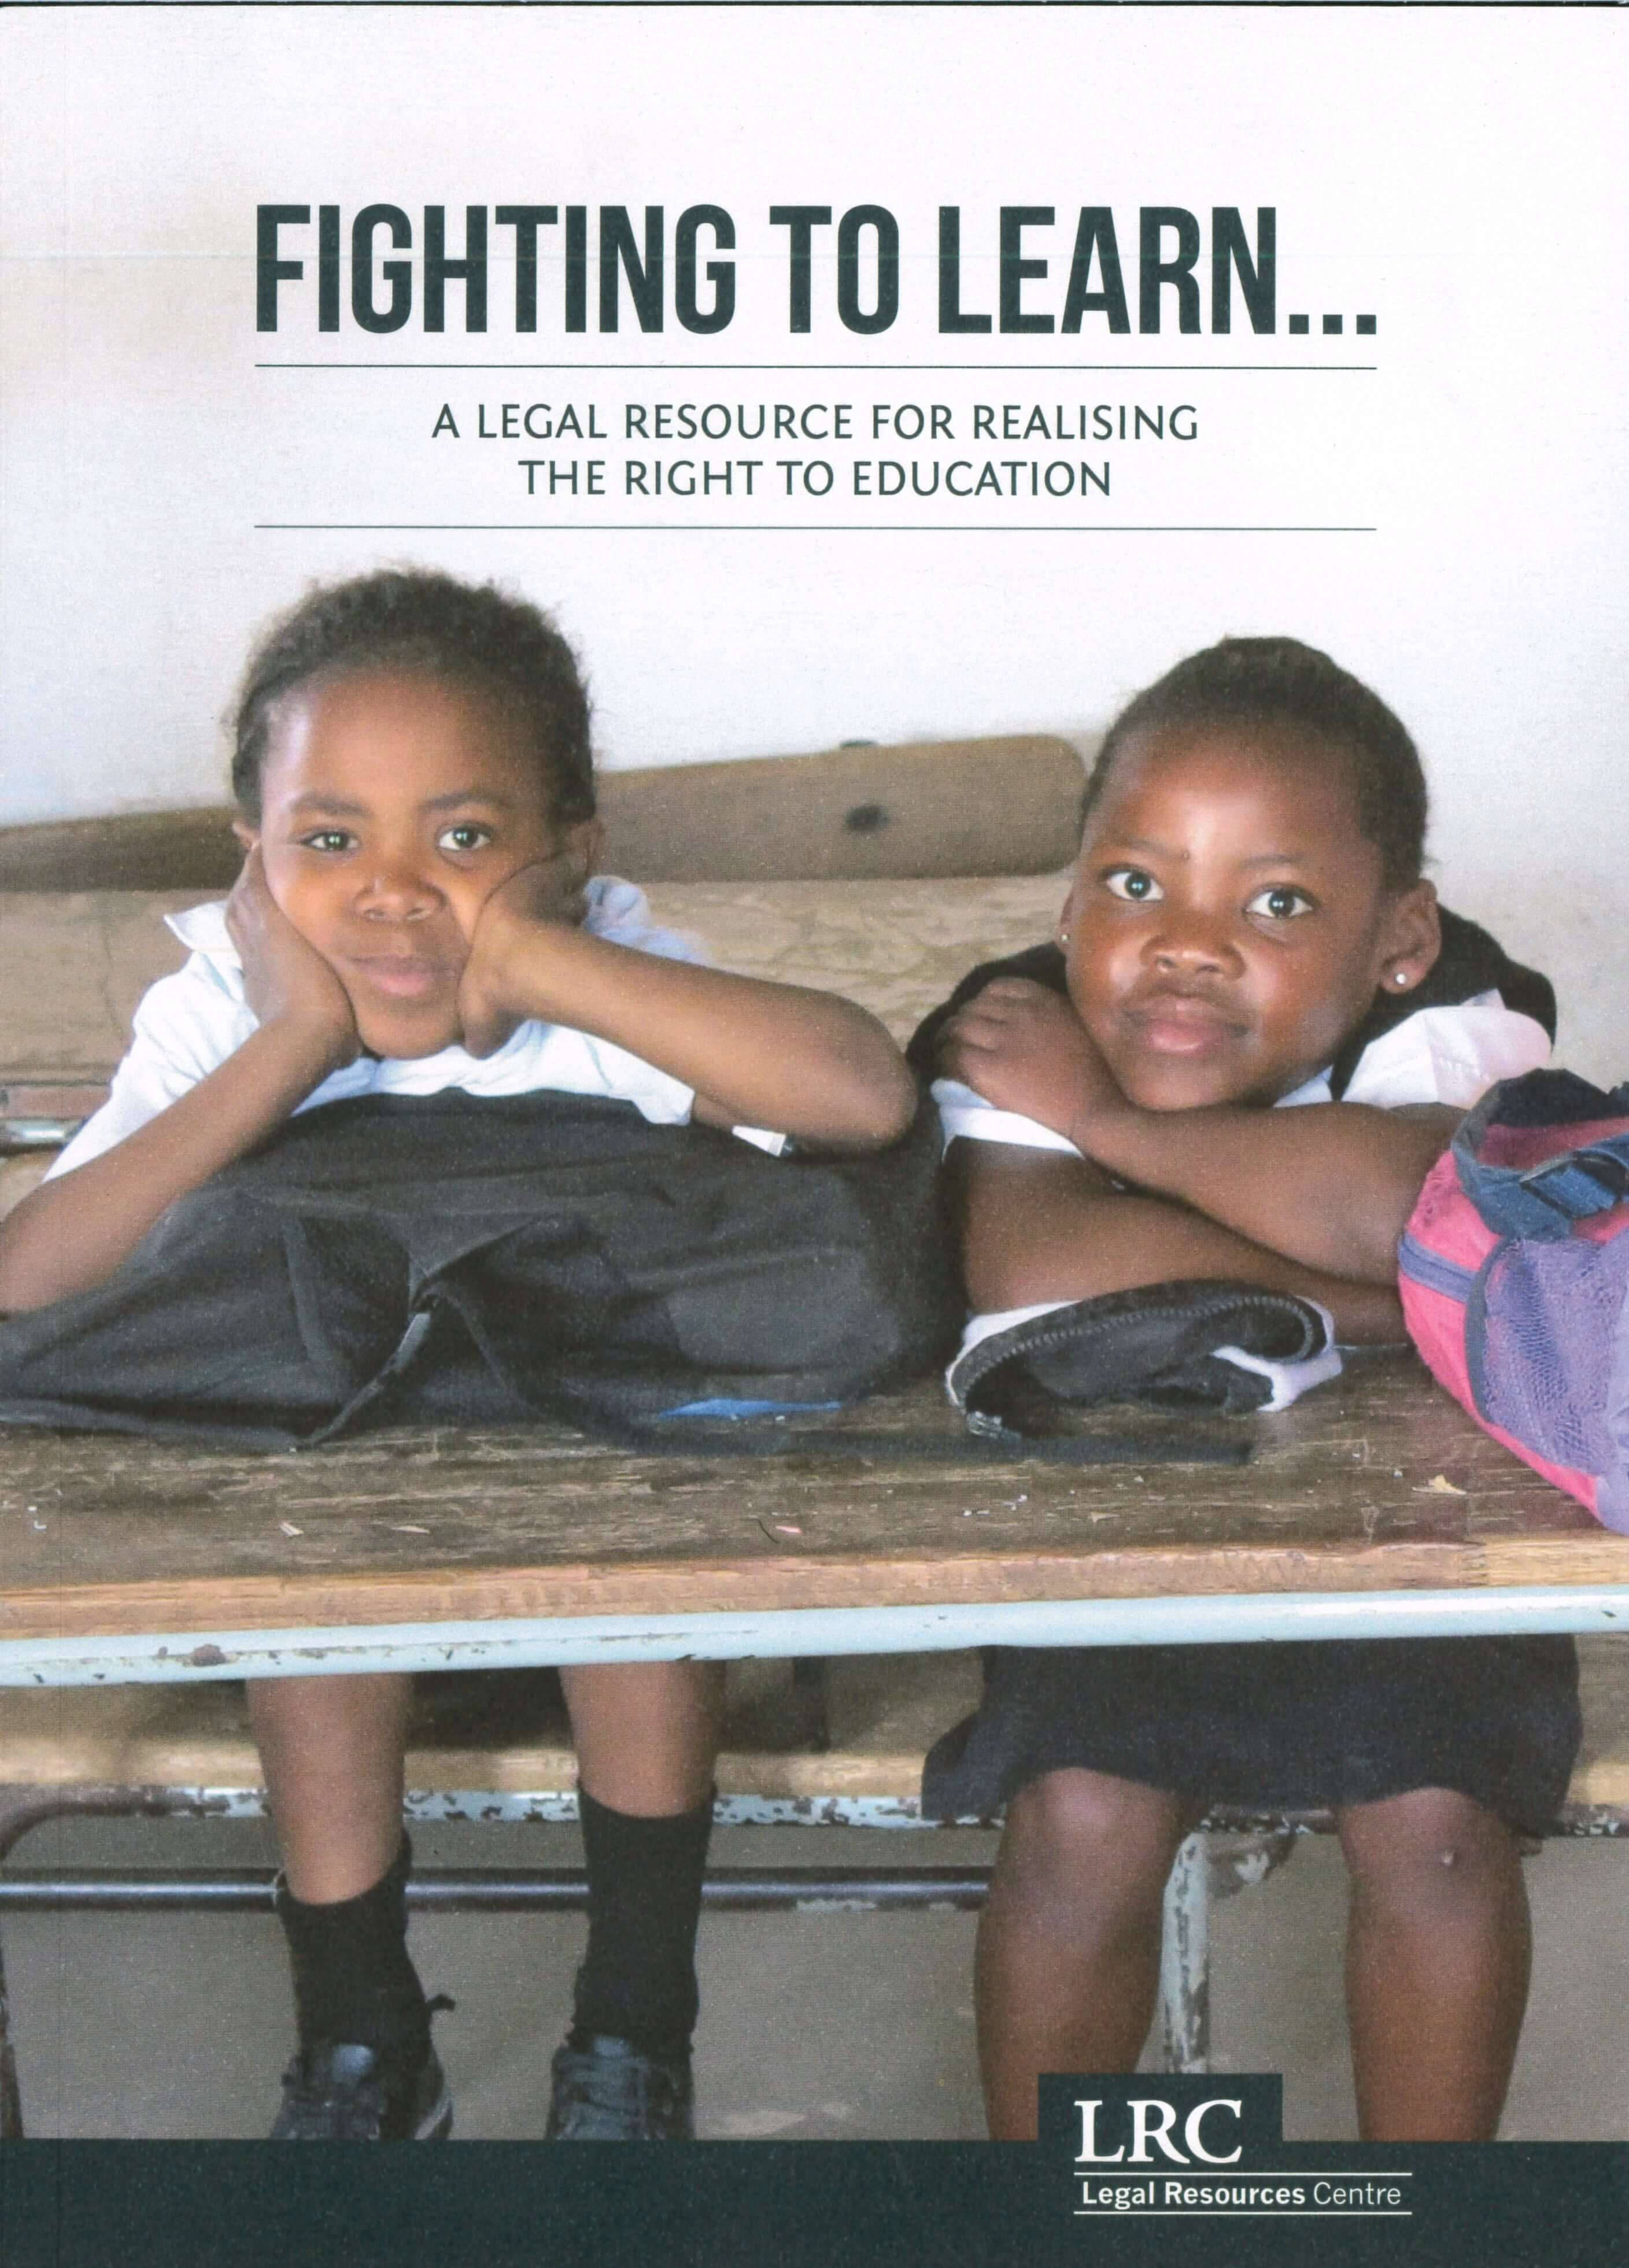 Book Launch: Fighting to Learn  Realising Social, Economic and Cultural Rights through litigation in South Africa